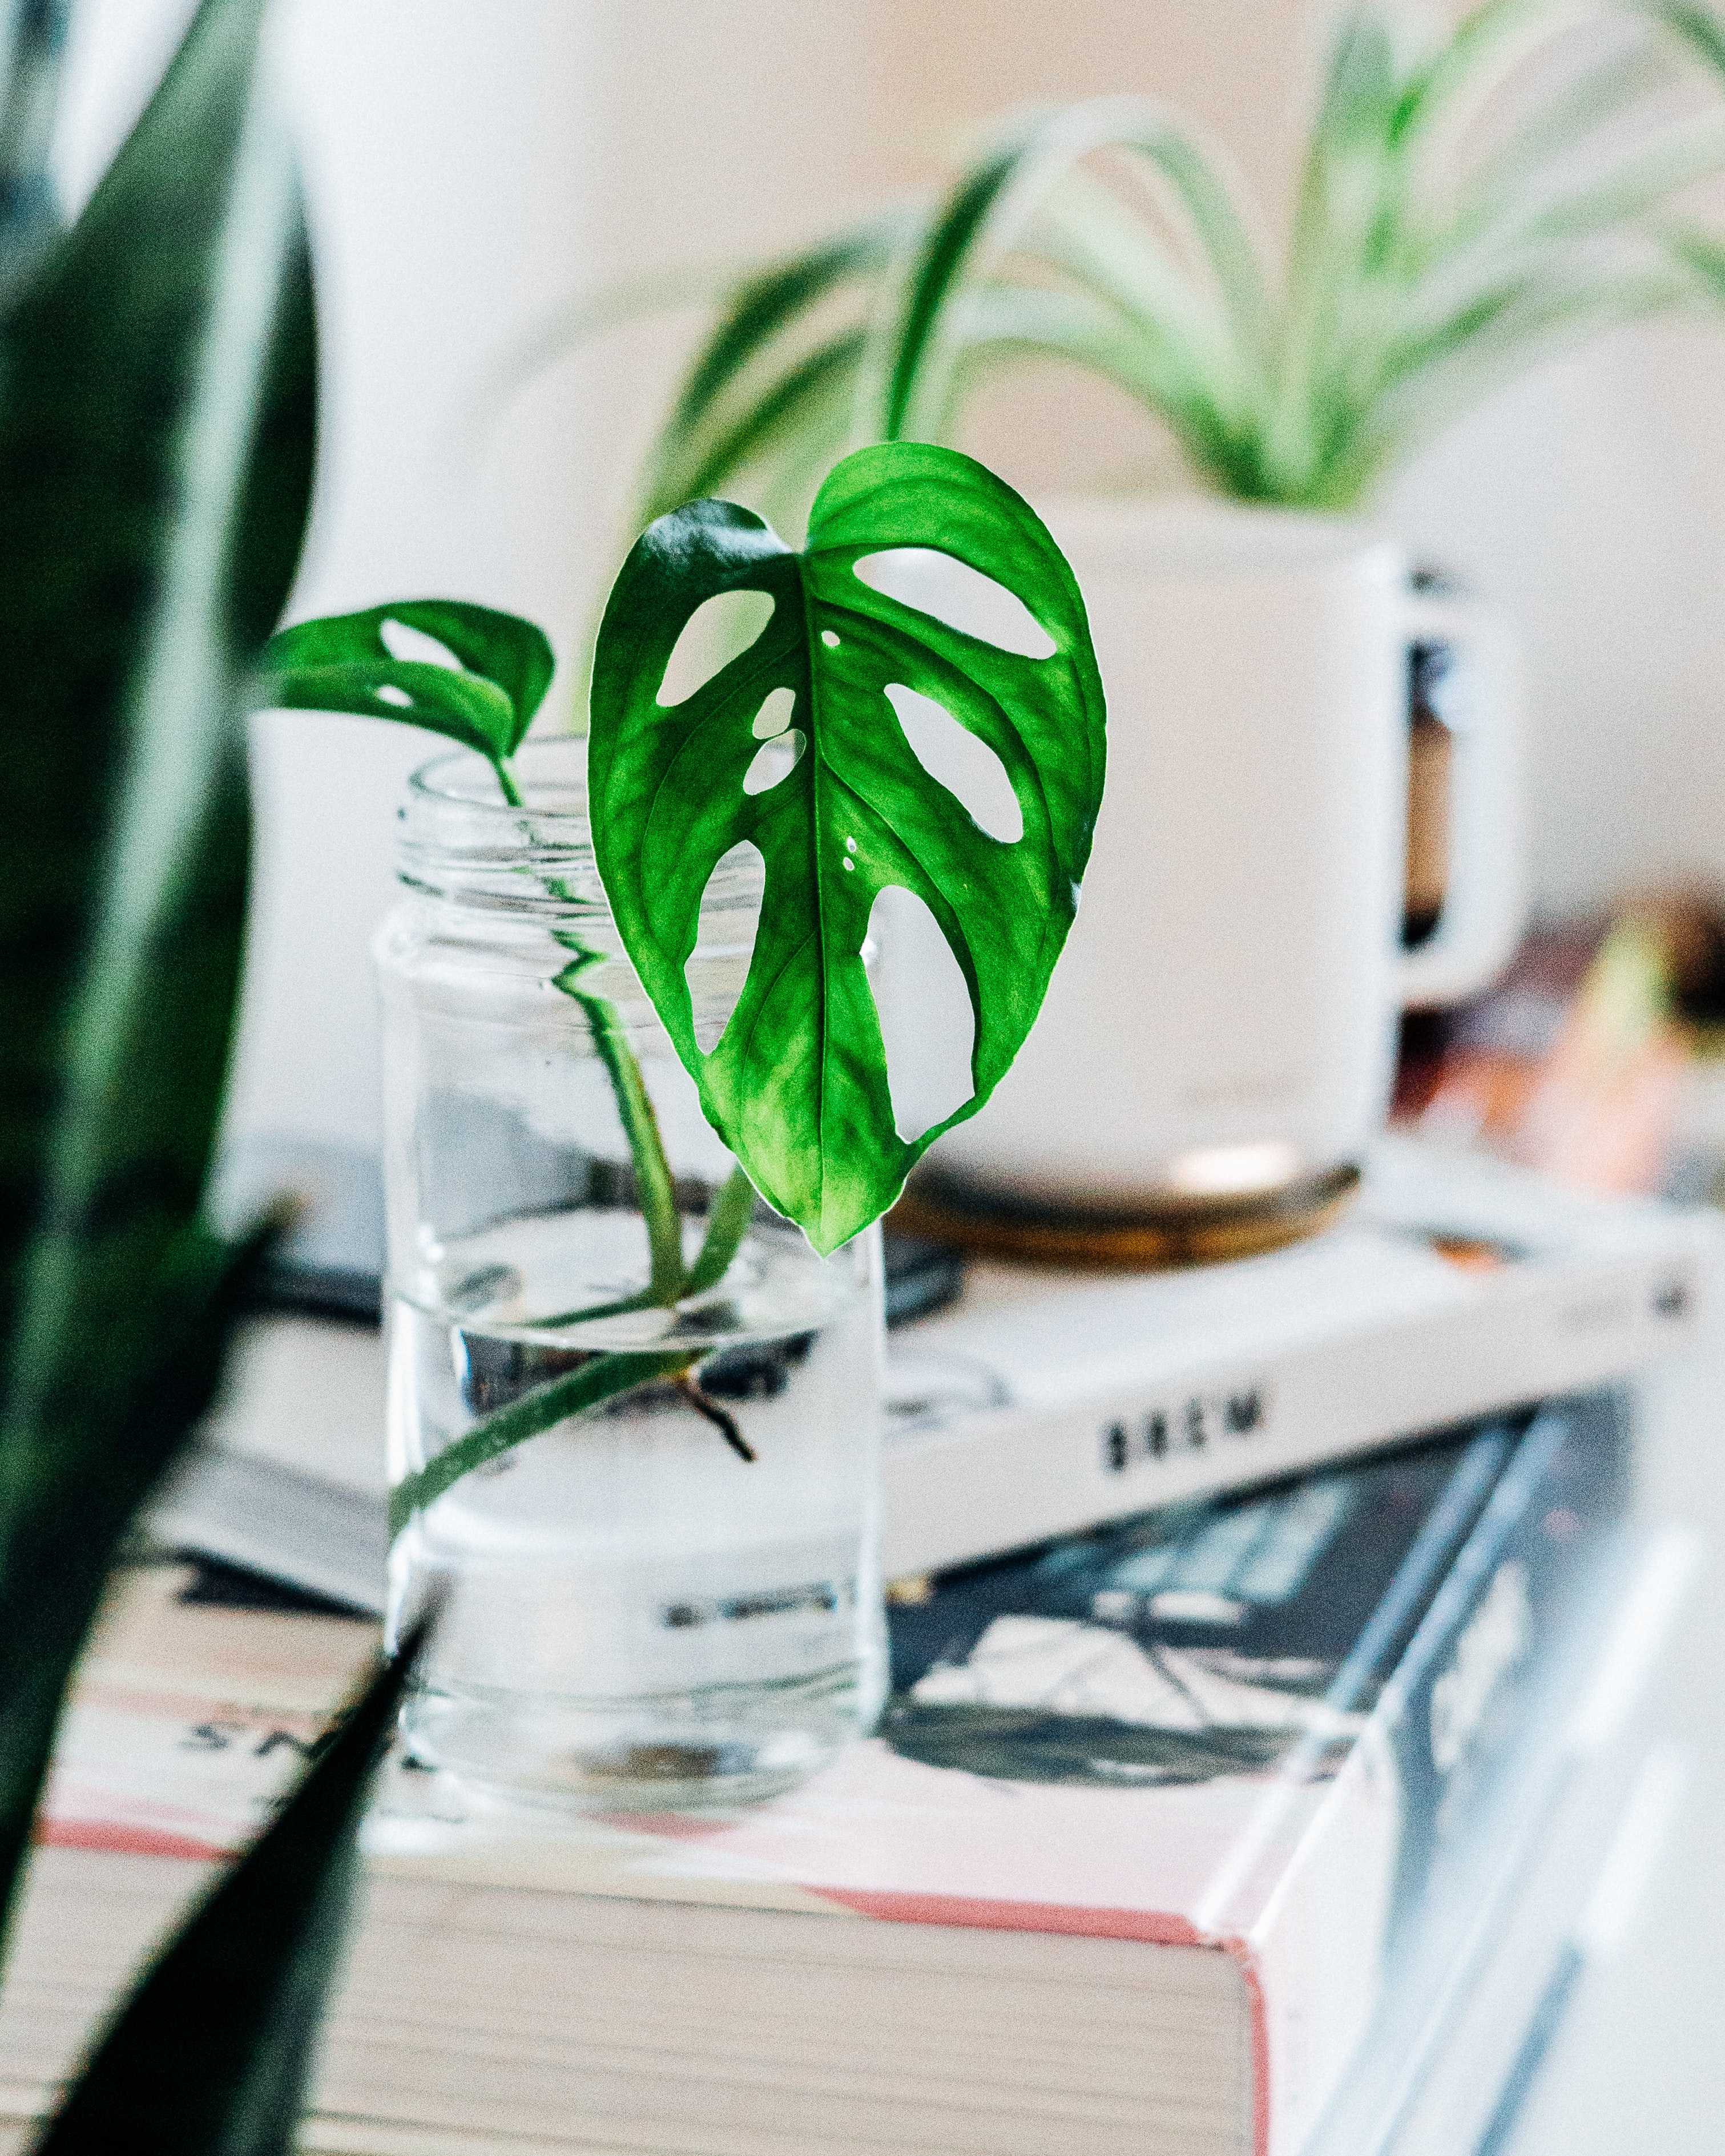 selective focus photography of leafed plant inside jar with water